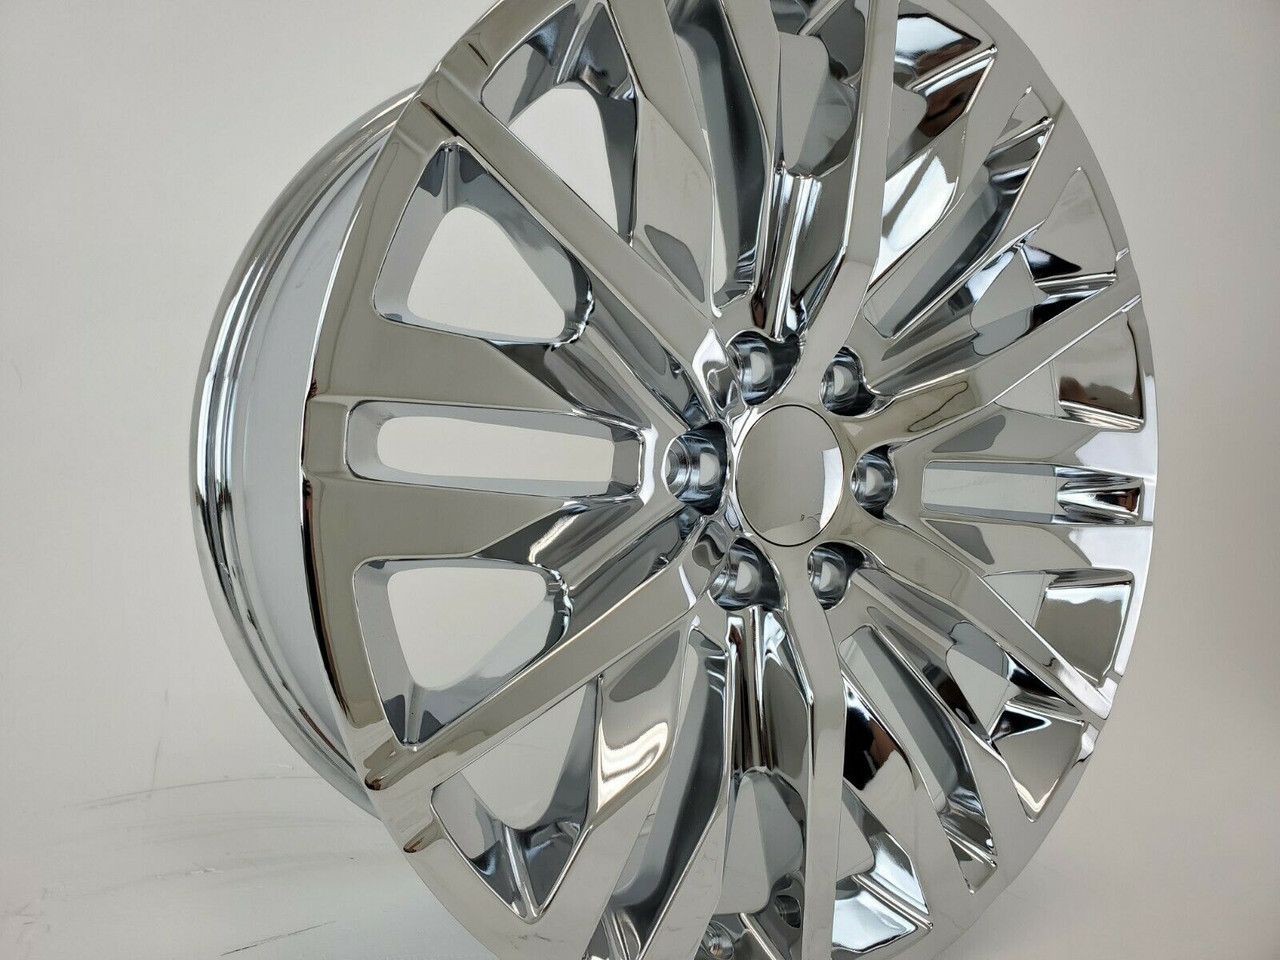 22 2019 Chevy Silverado 1500 Elevation Chrome Wheels Tahoe Gmc Sierra Set Of 4 22x9 Rims Stock Wheel Solutions